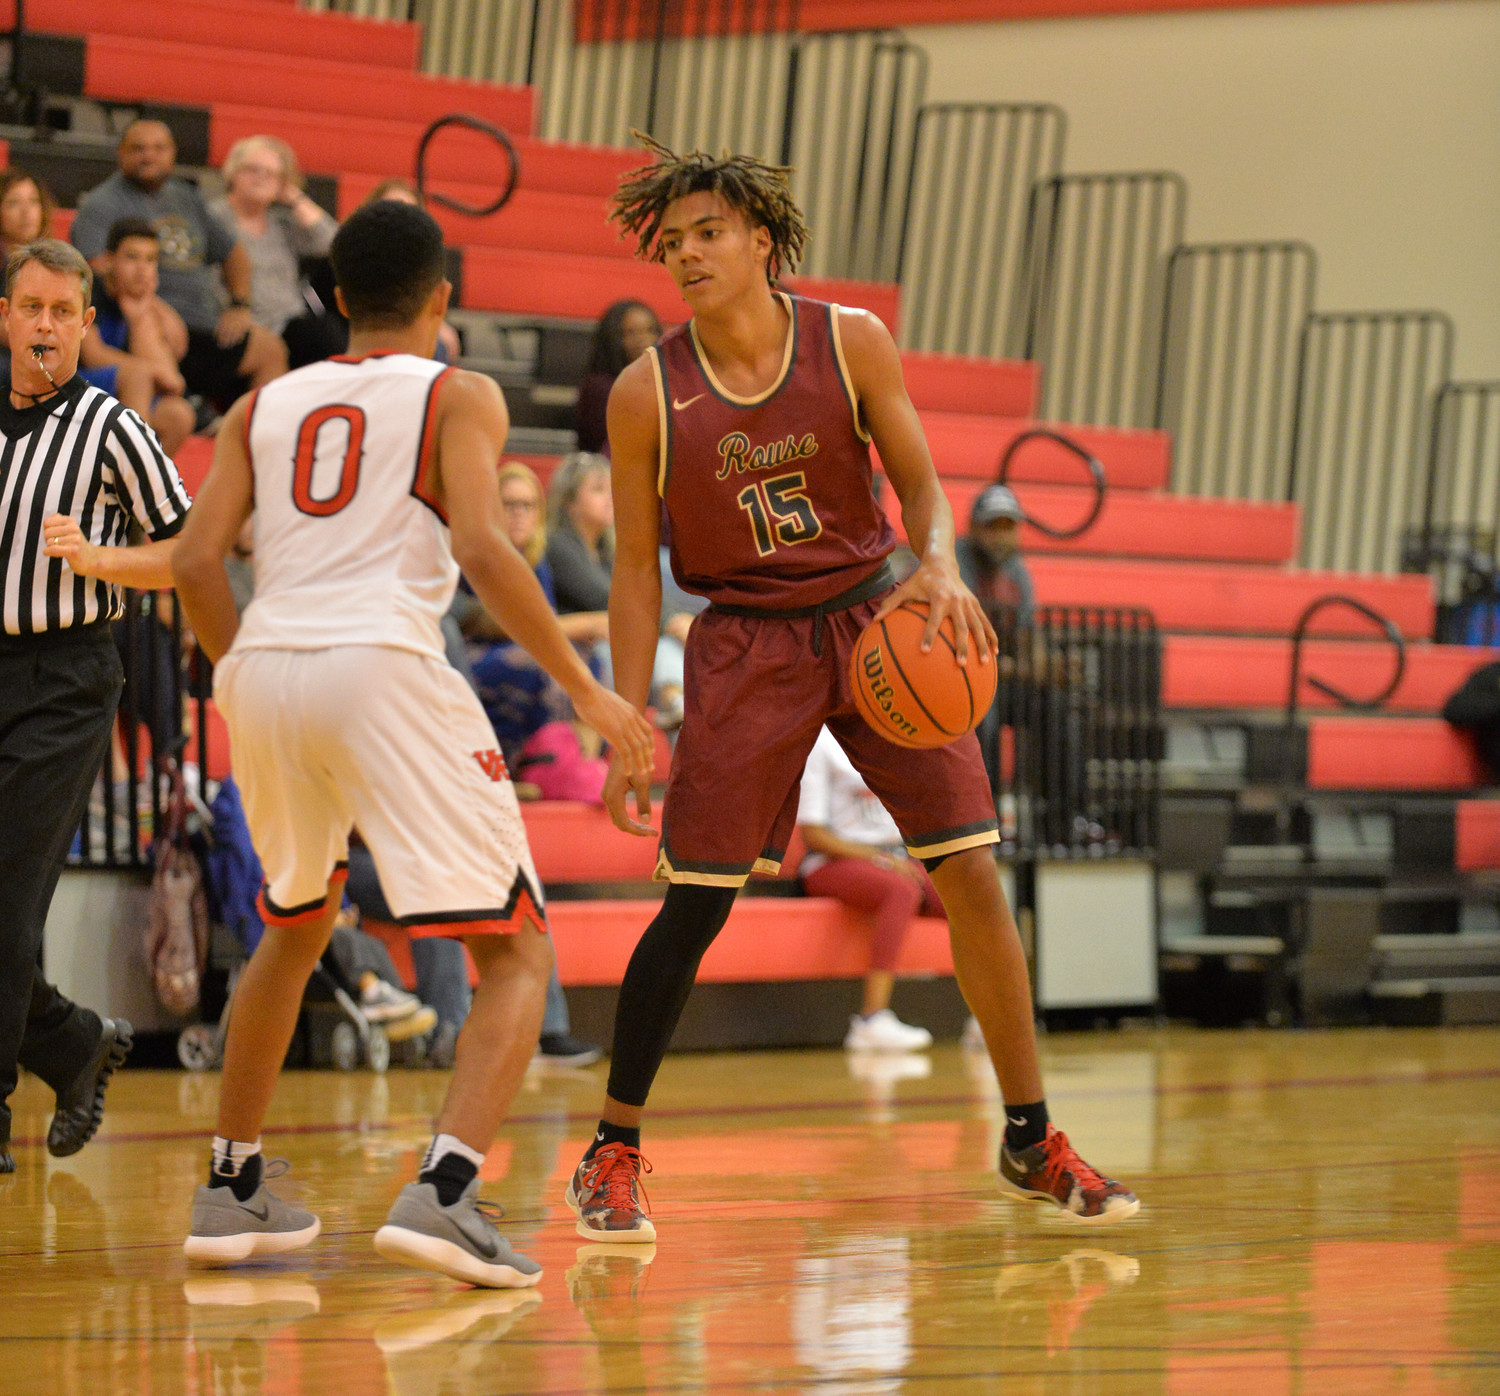 Trevor Berry and Rouse lost to Vista Ridge 52-43 on Tuesday night.